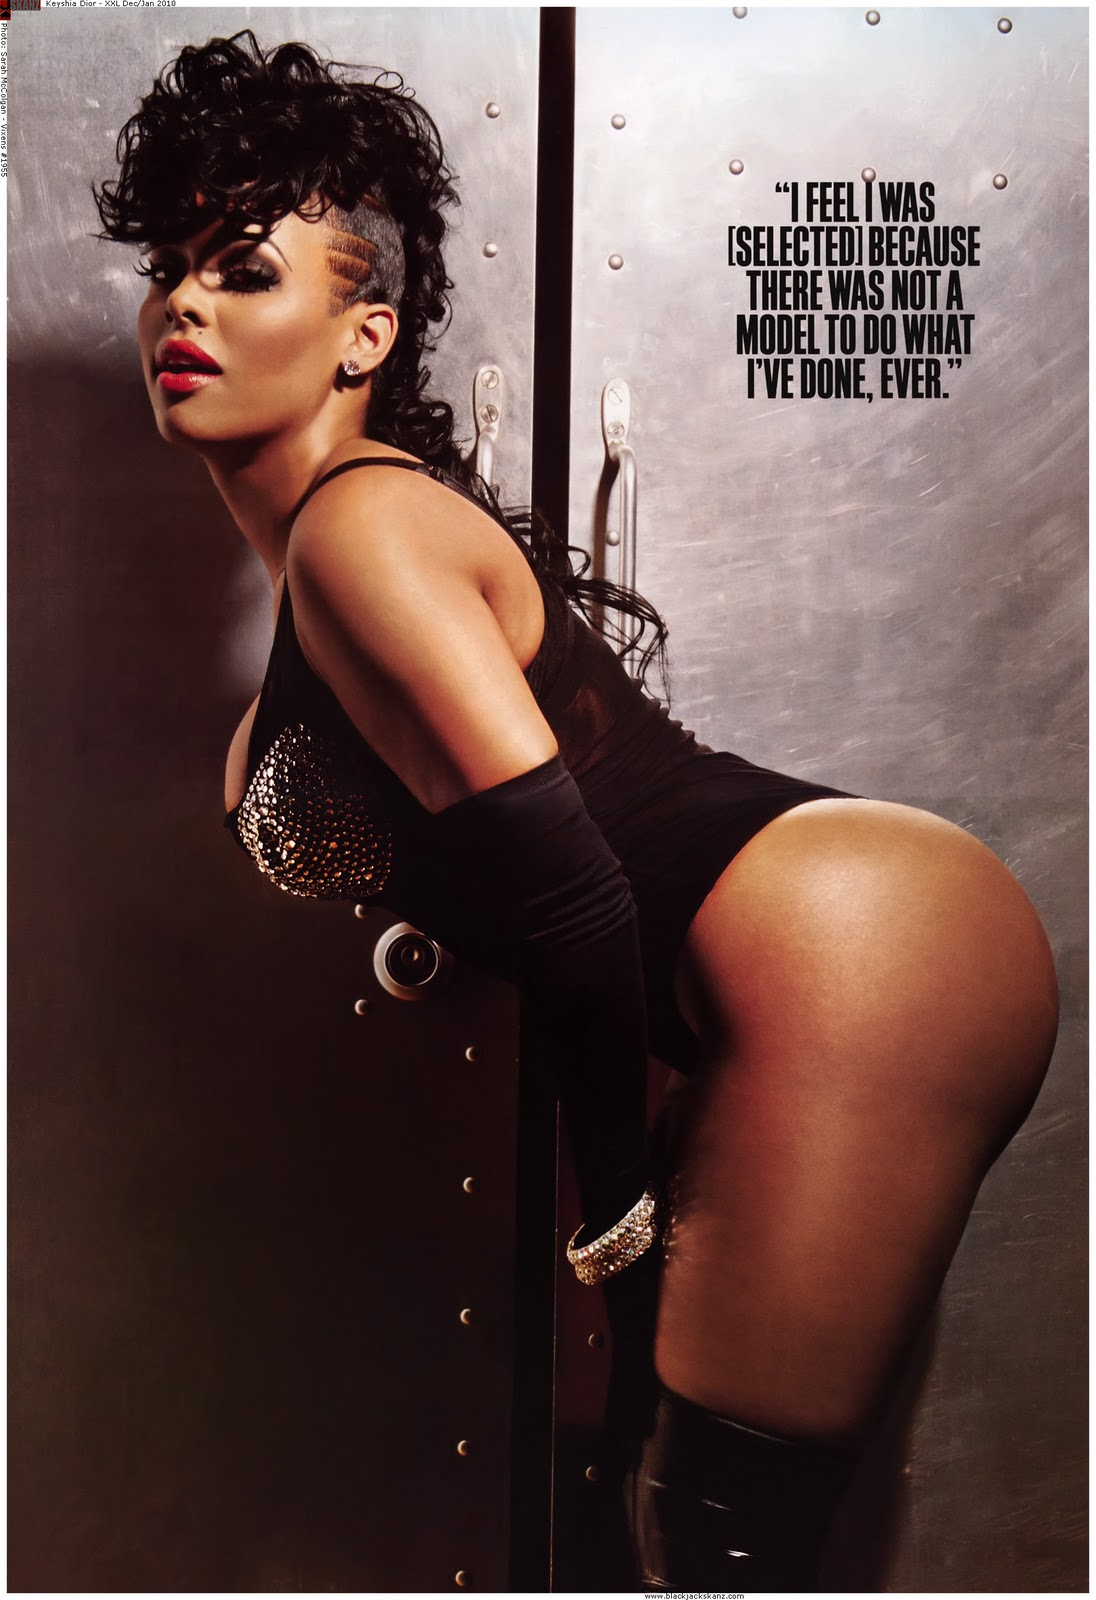 Keyshia Dior behding over in a black leather one piece